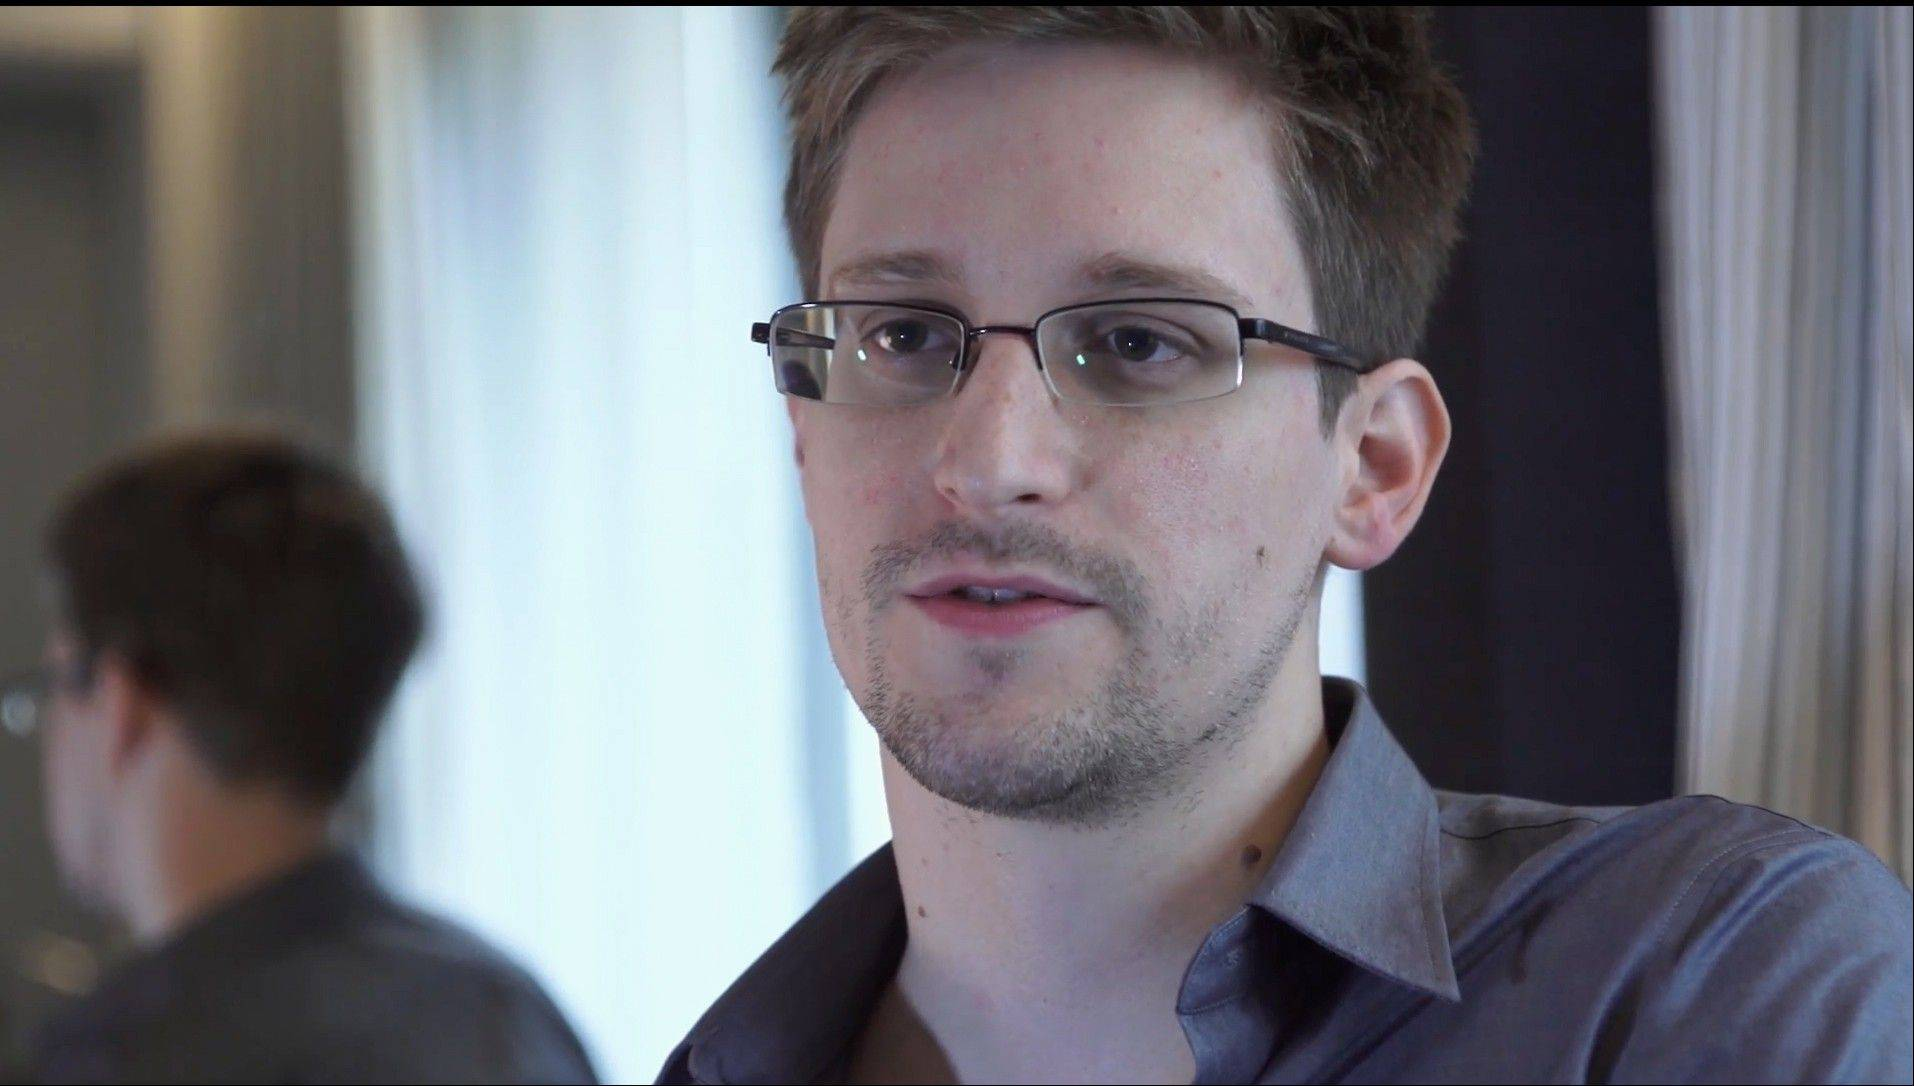 Edward Snowden says his �mission�s already accomplished� after leaking National Security Agency secrets that have caused a reassessment of U.S. surveillance policies.